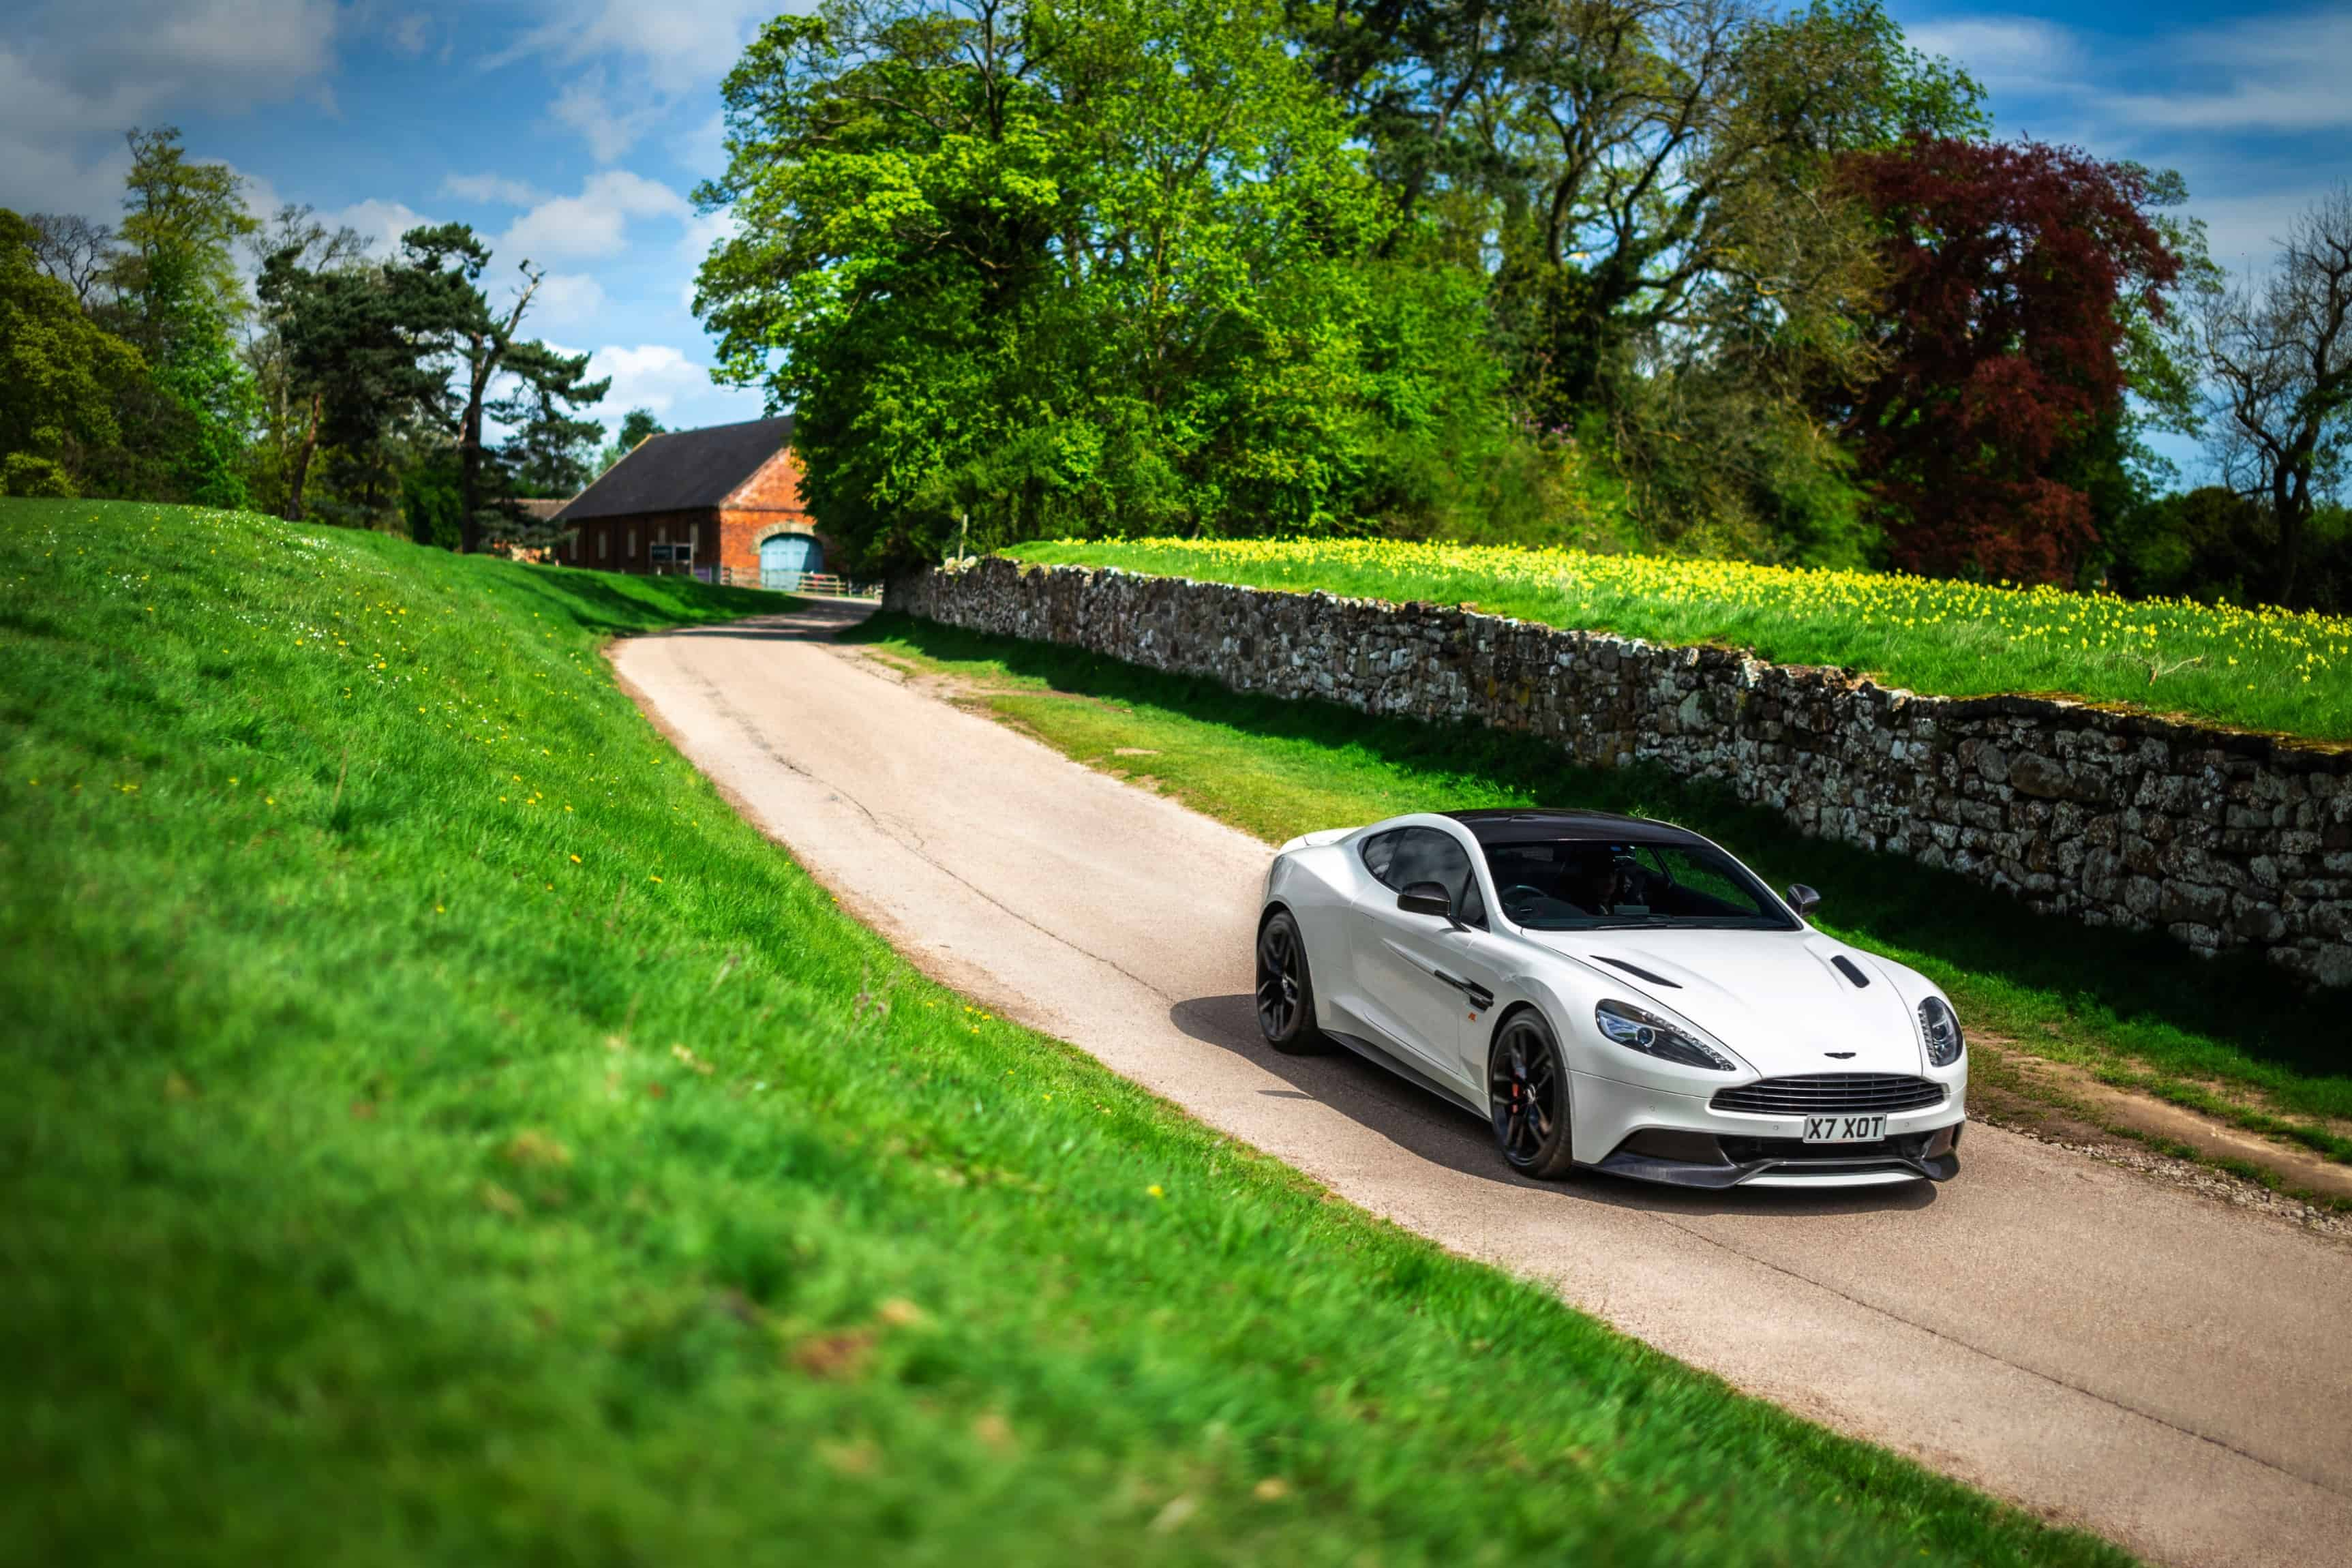 Aston Martin Vanquish S driving through Countryside